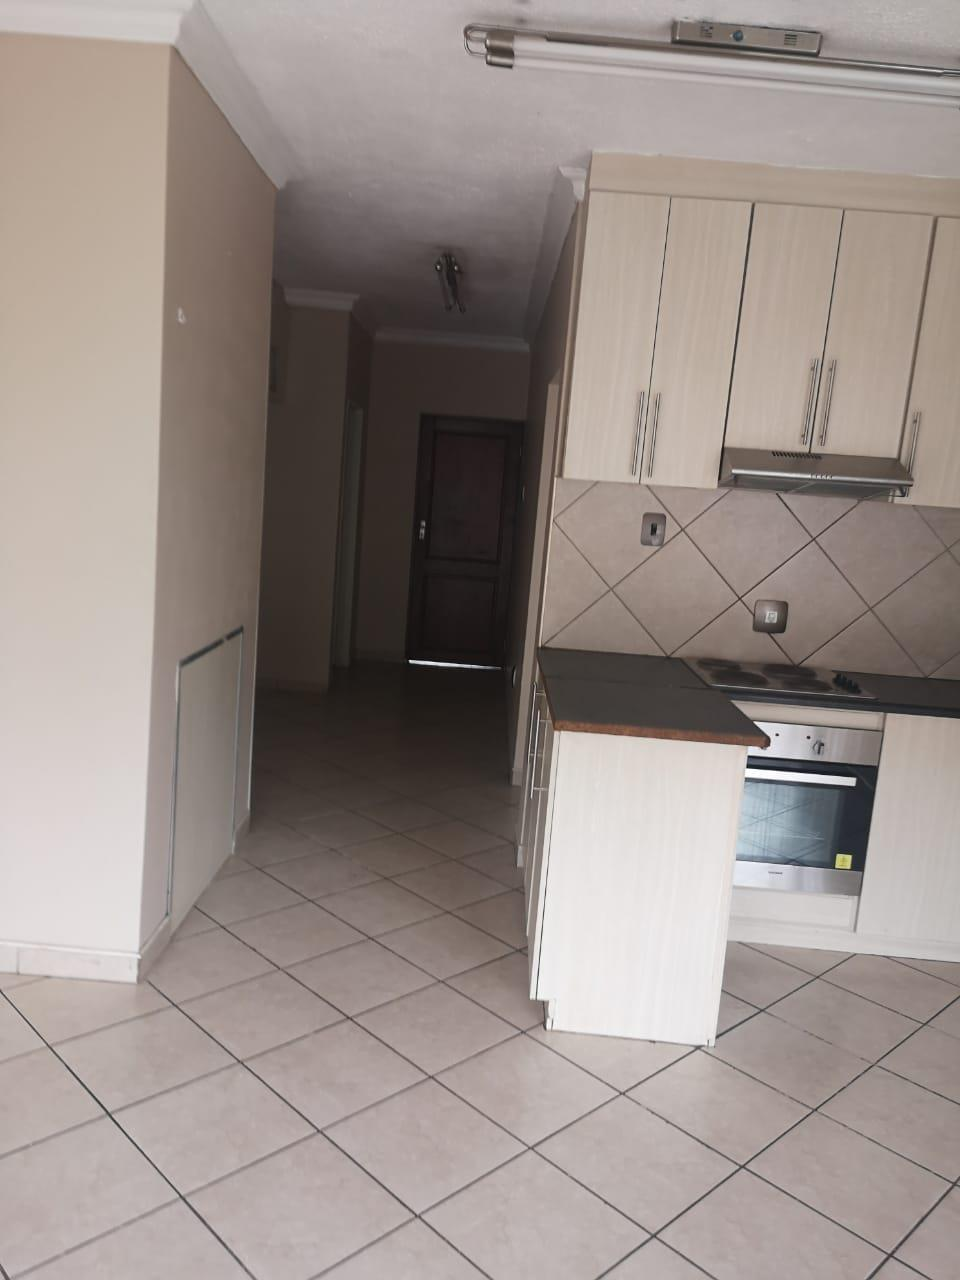 3 Bedroom Apartment / Flat For Sale in Mineralia